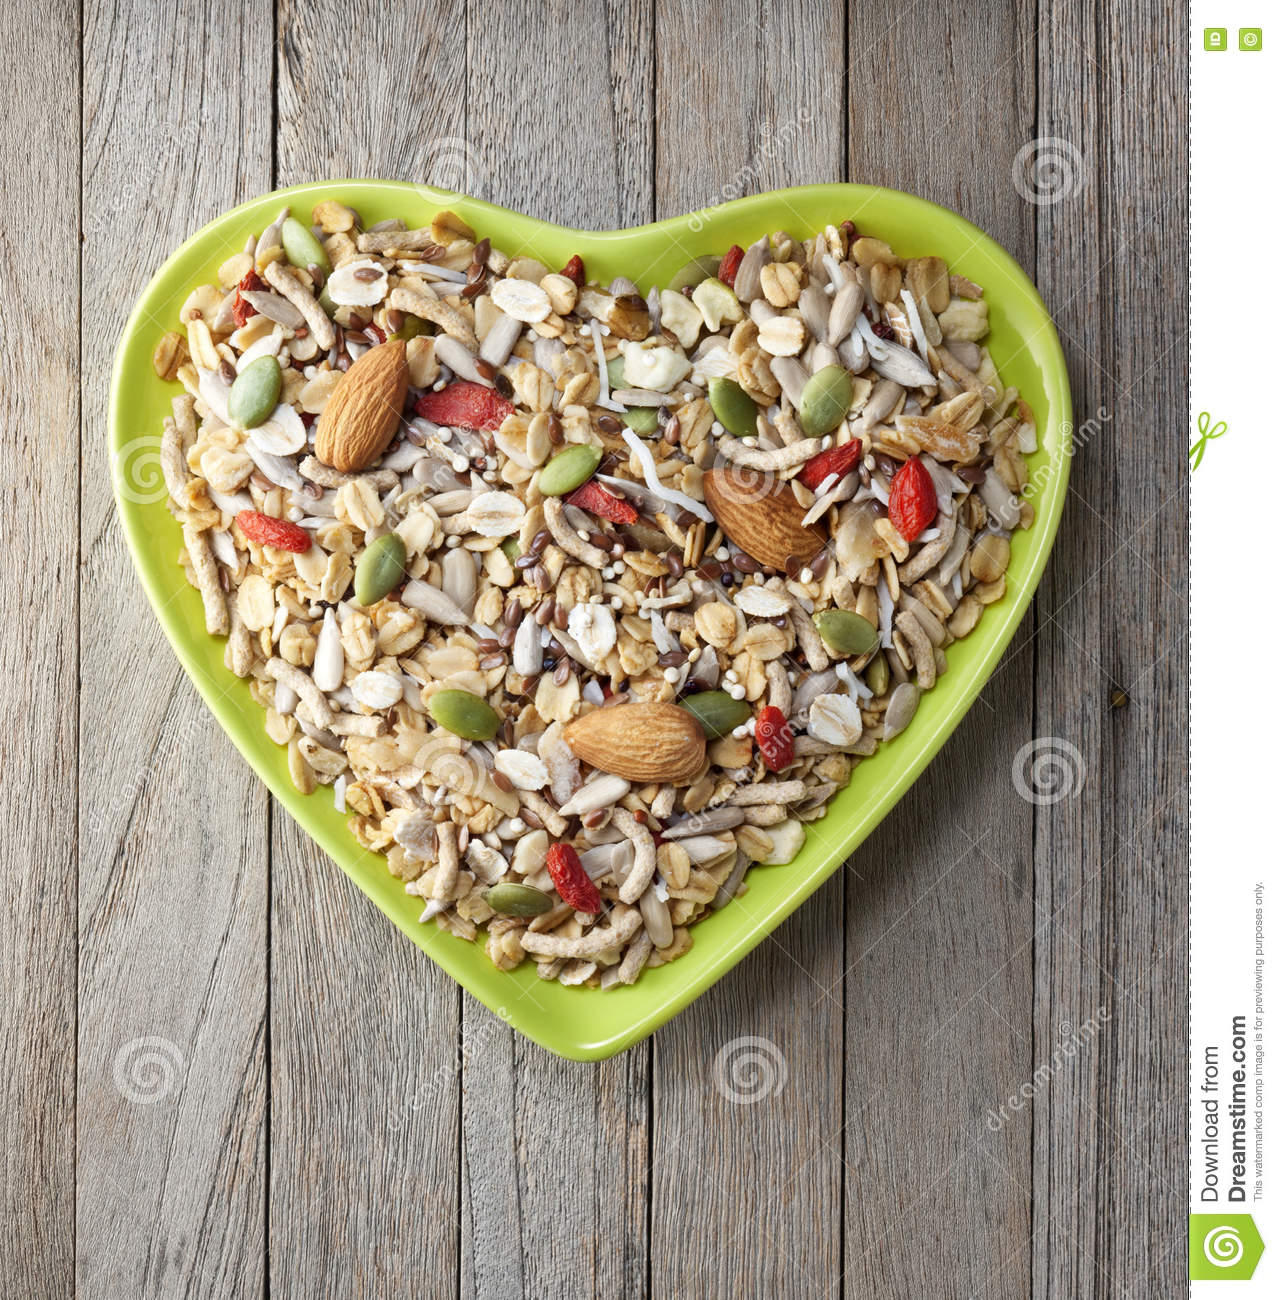 Heart Cereal Fruit Granola Muesli Bowl Stock Photo - Image: 76820274